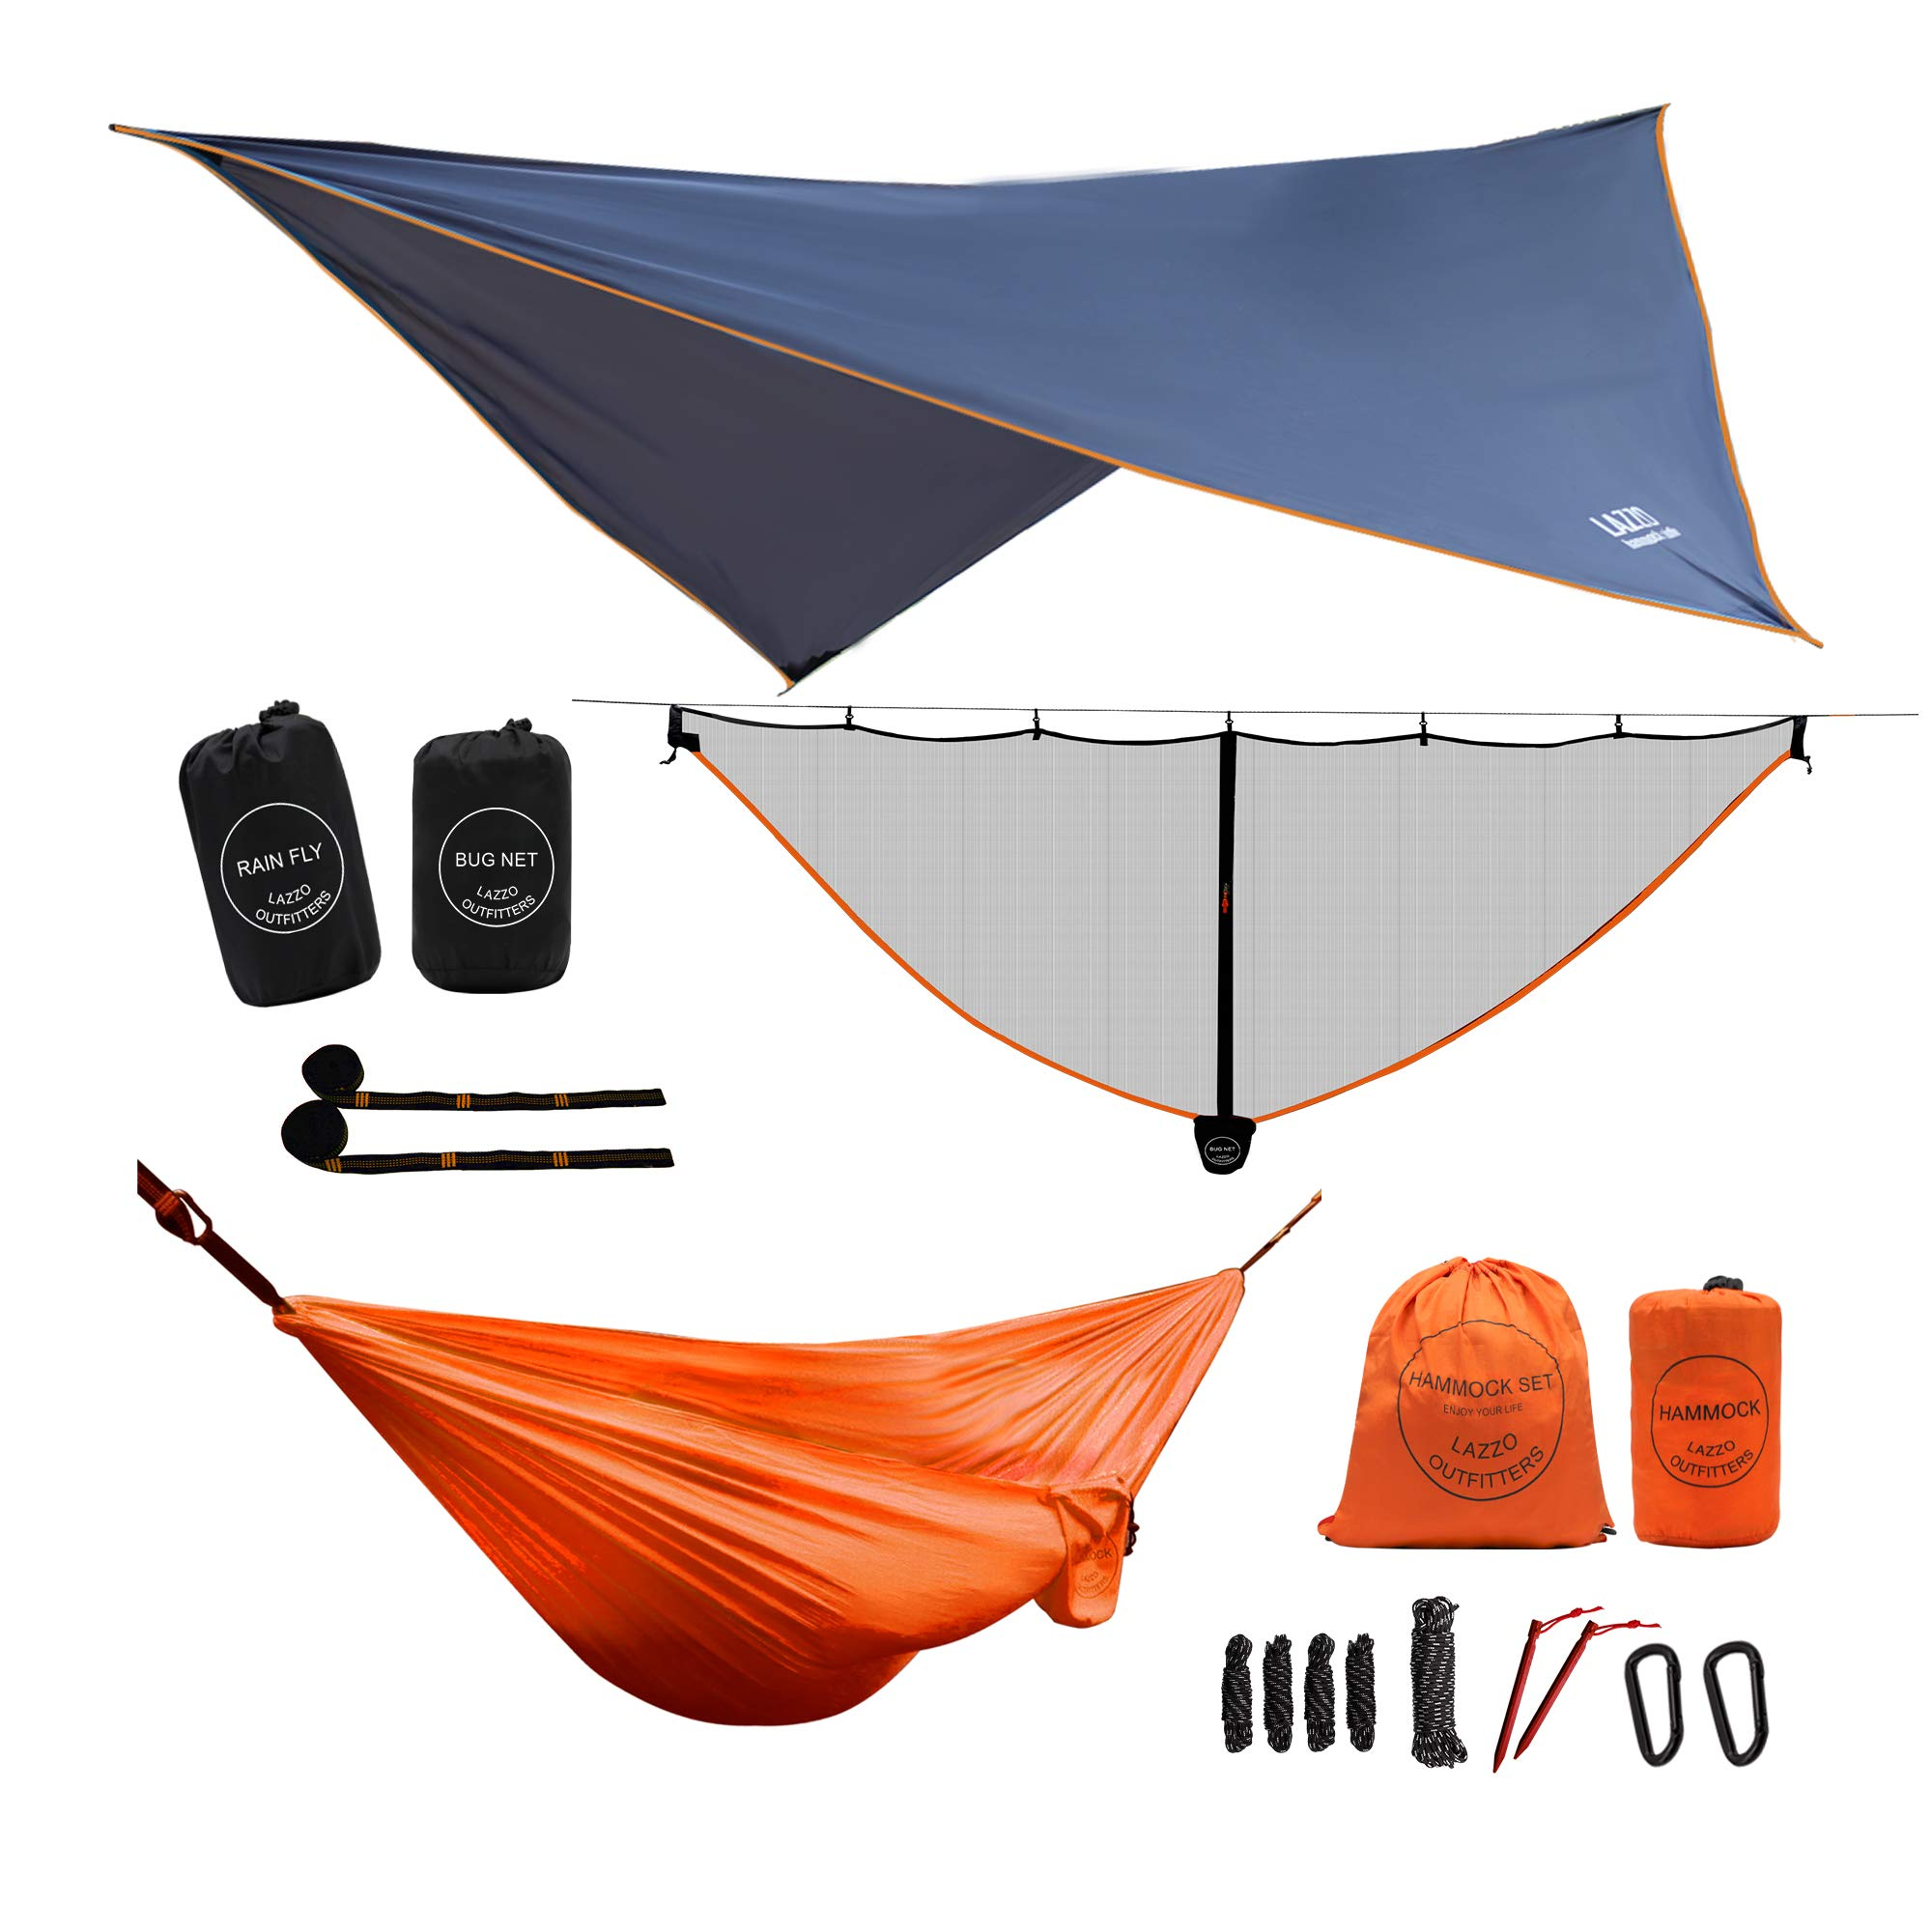 LAZZO Camping Hammock Set with Single Hammock,Mosquito Net, Rain Fly, 3 Foot Tree Straps, and Backpack,Perfect for Backpacking,Camping,Travel,Hiking & Yard (Orange, 9.2) by LAZZO